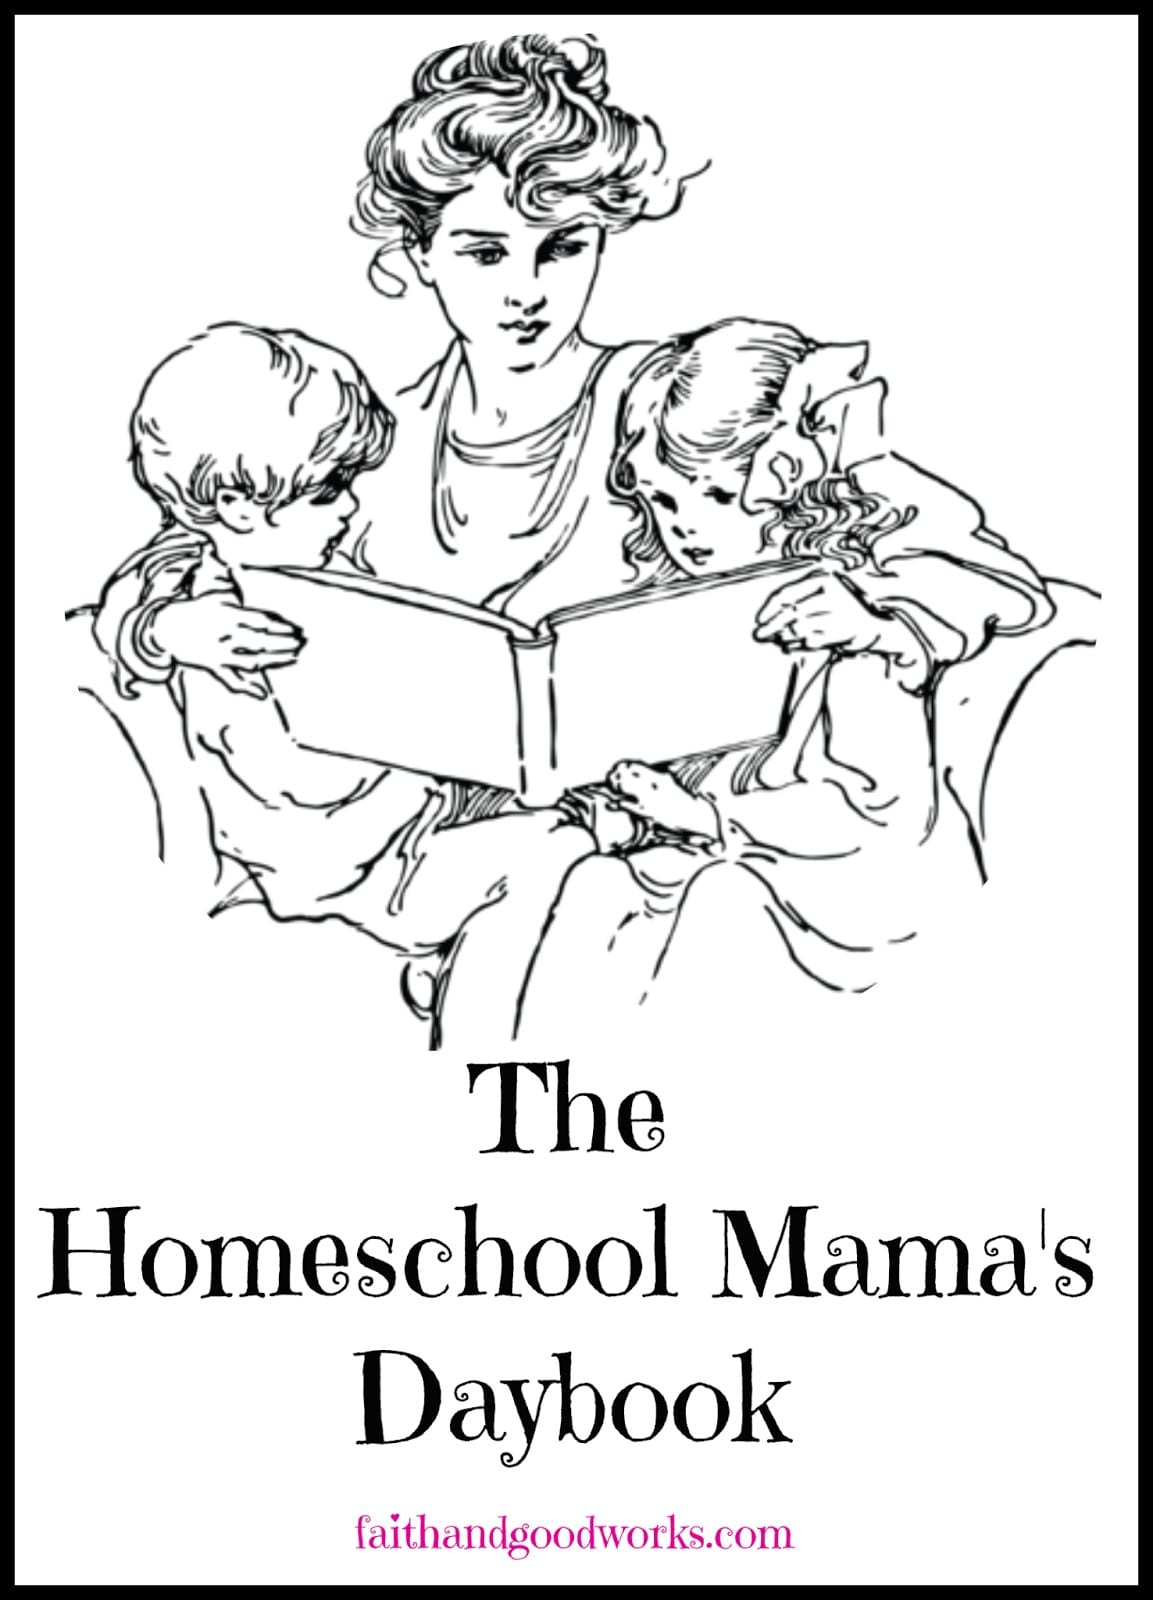 The Homeschool Mama's Daybook – April 2016